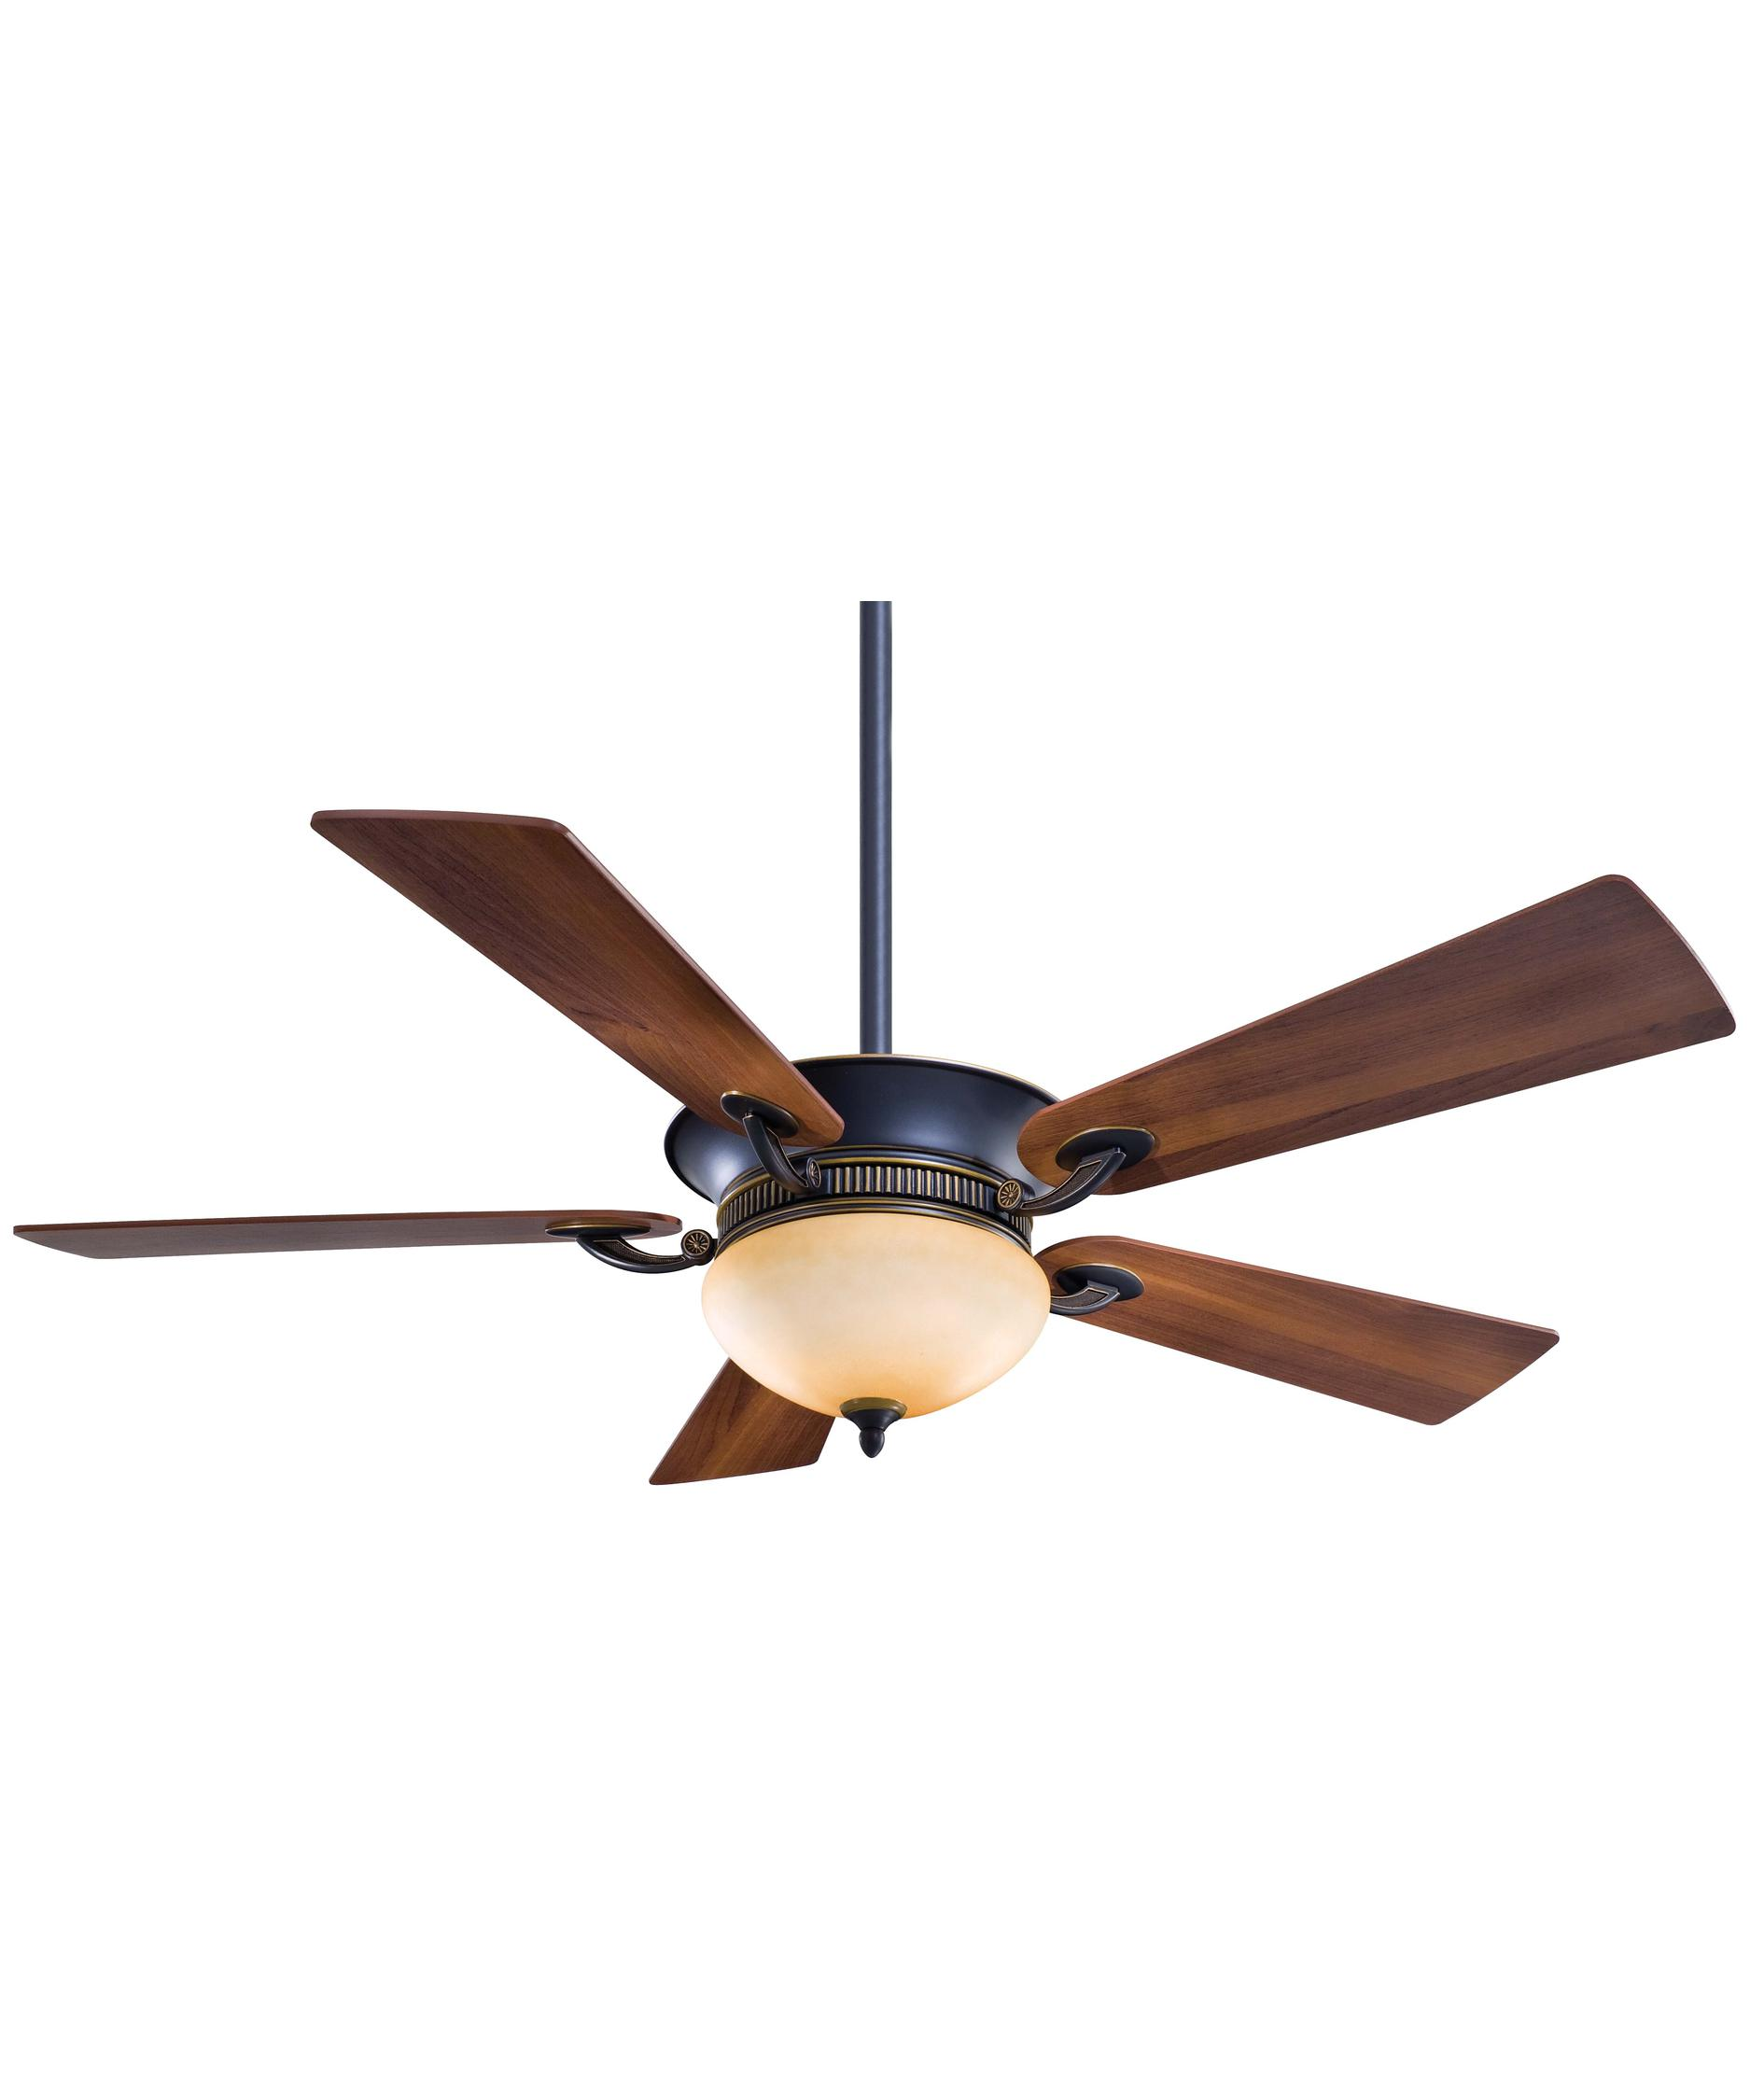 Minka Aire Delano 52 Inch Ceiling Fan With Light Kit